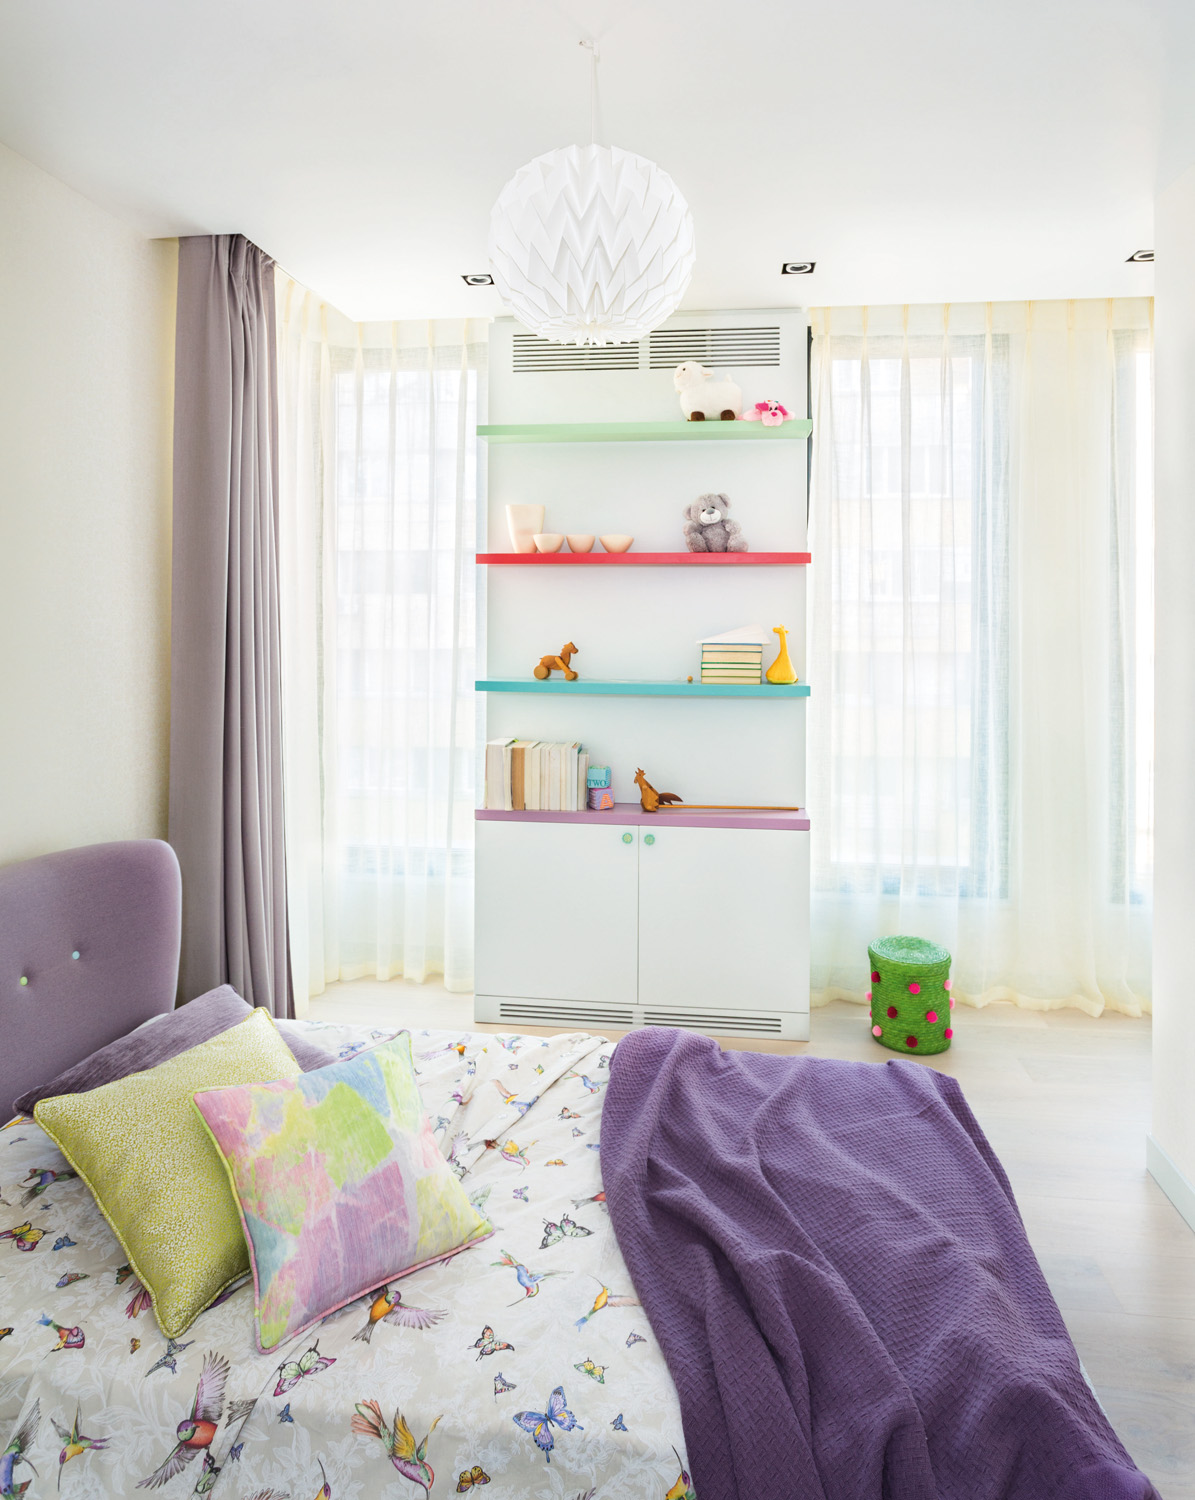 Bright colours balance with white walls and soft drapes